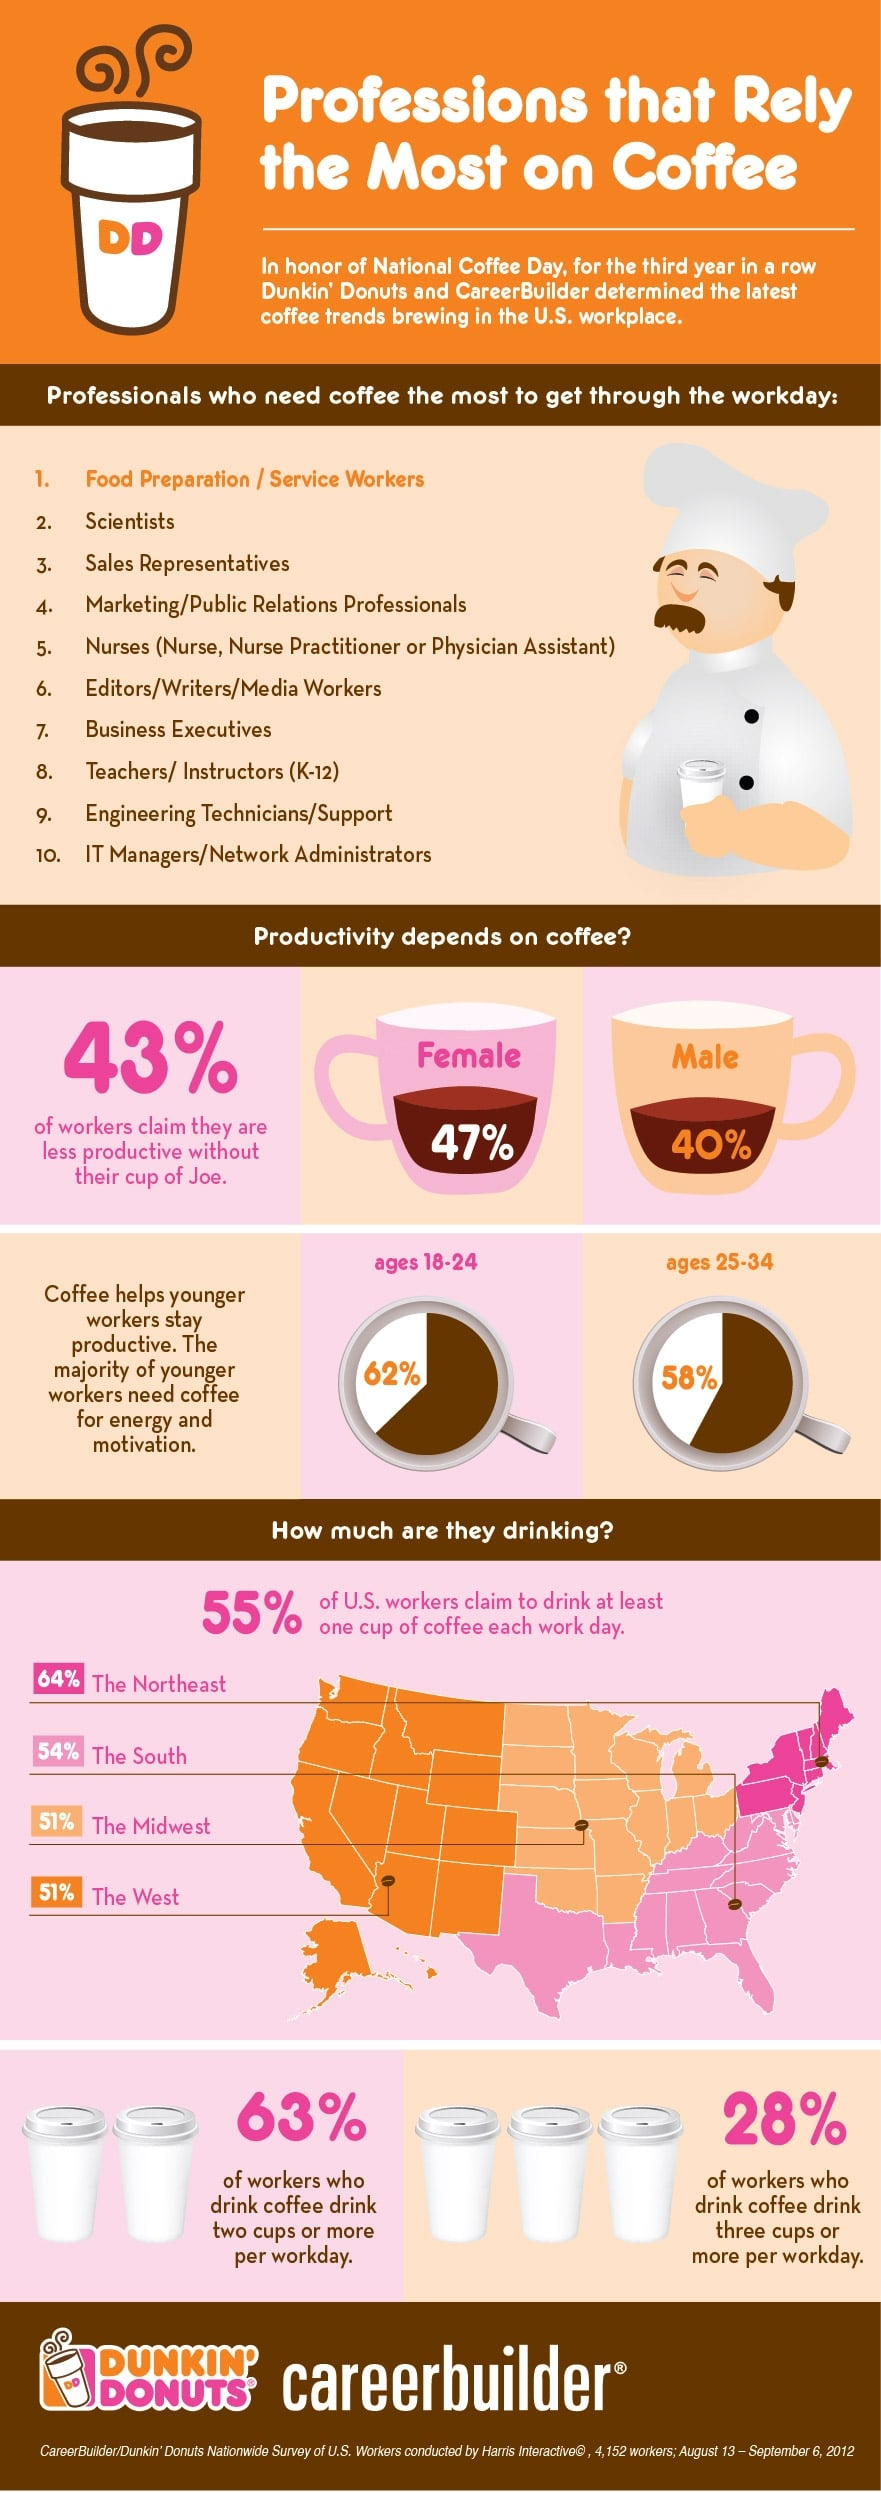 coffee-addiction-by-profession-infographic